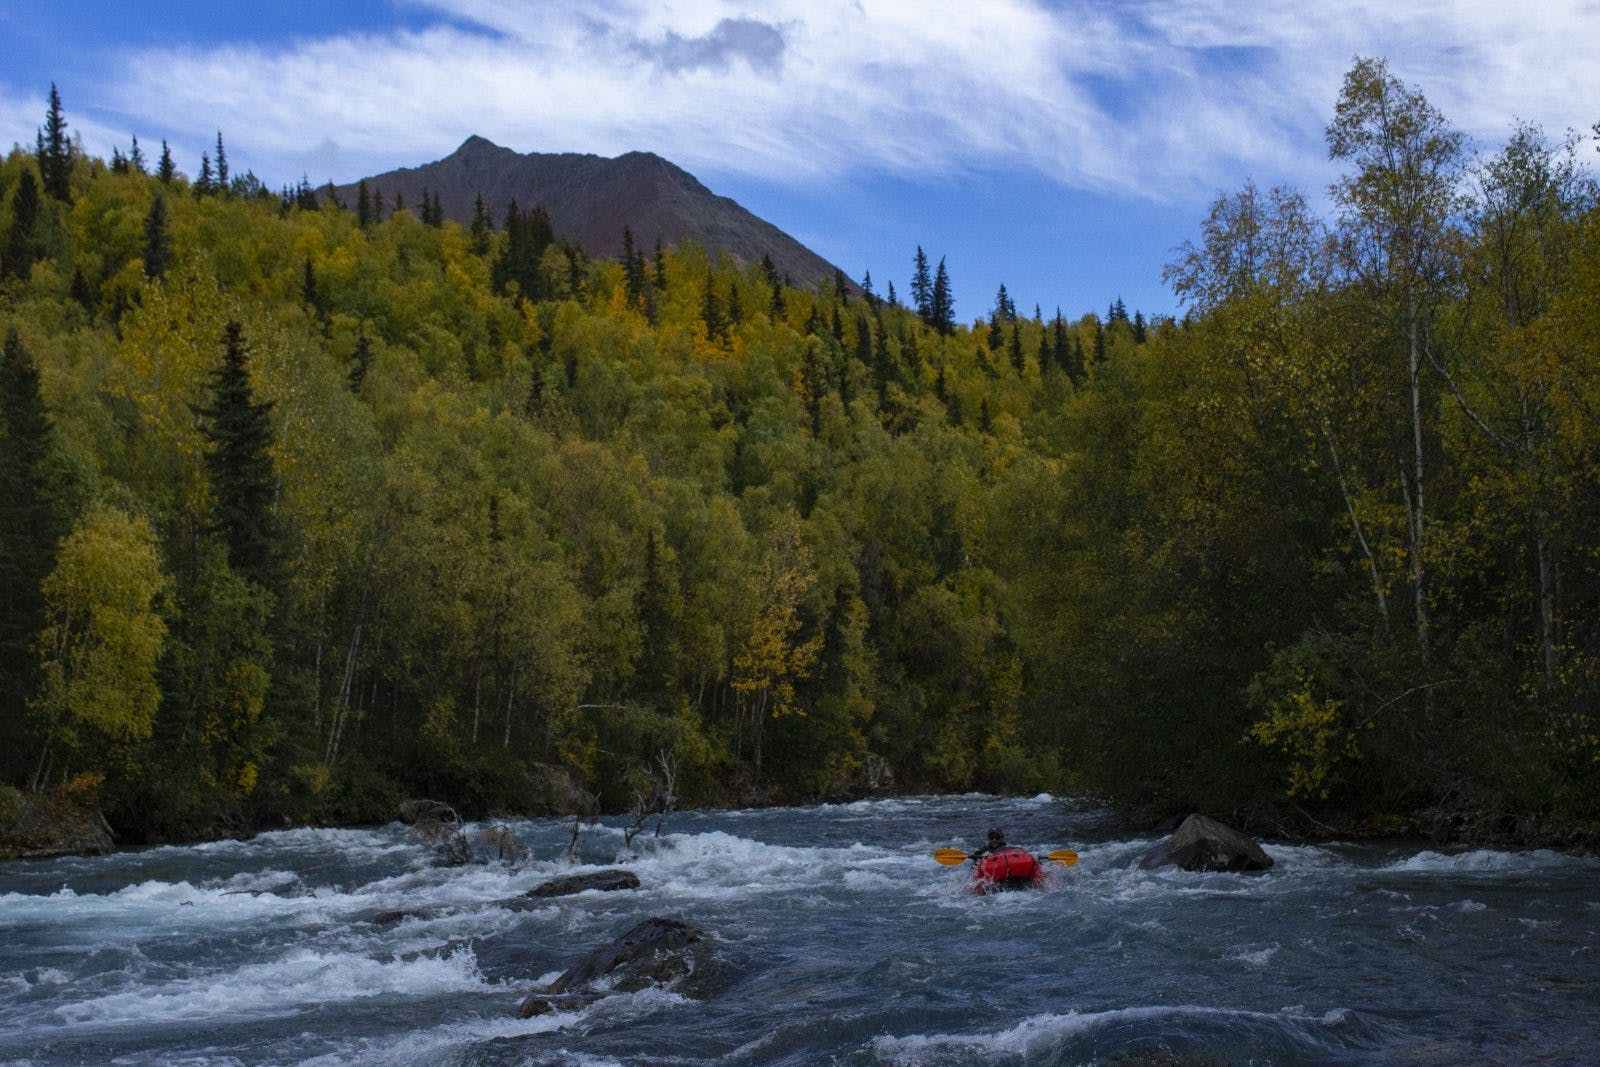 Paul Gabriel on the Tanalian River in search of a place to put a temperature logger. Photo by: Sam Carter